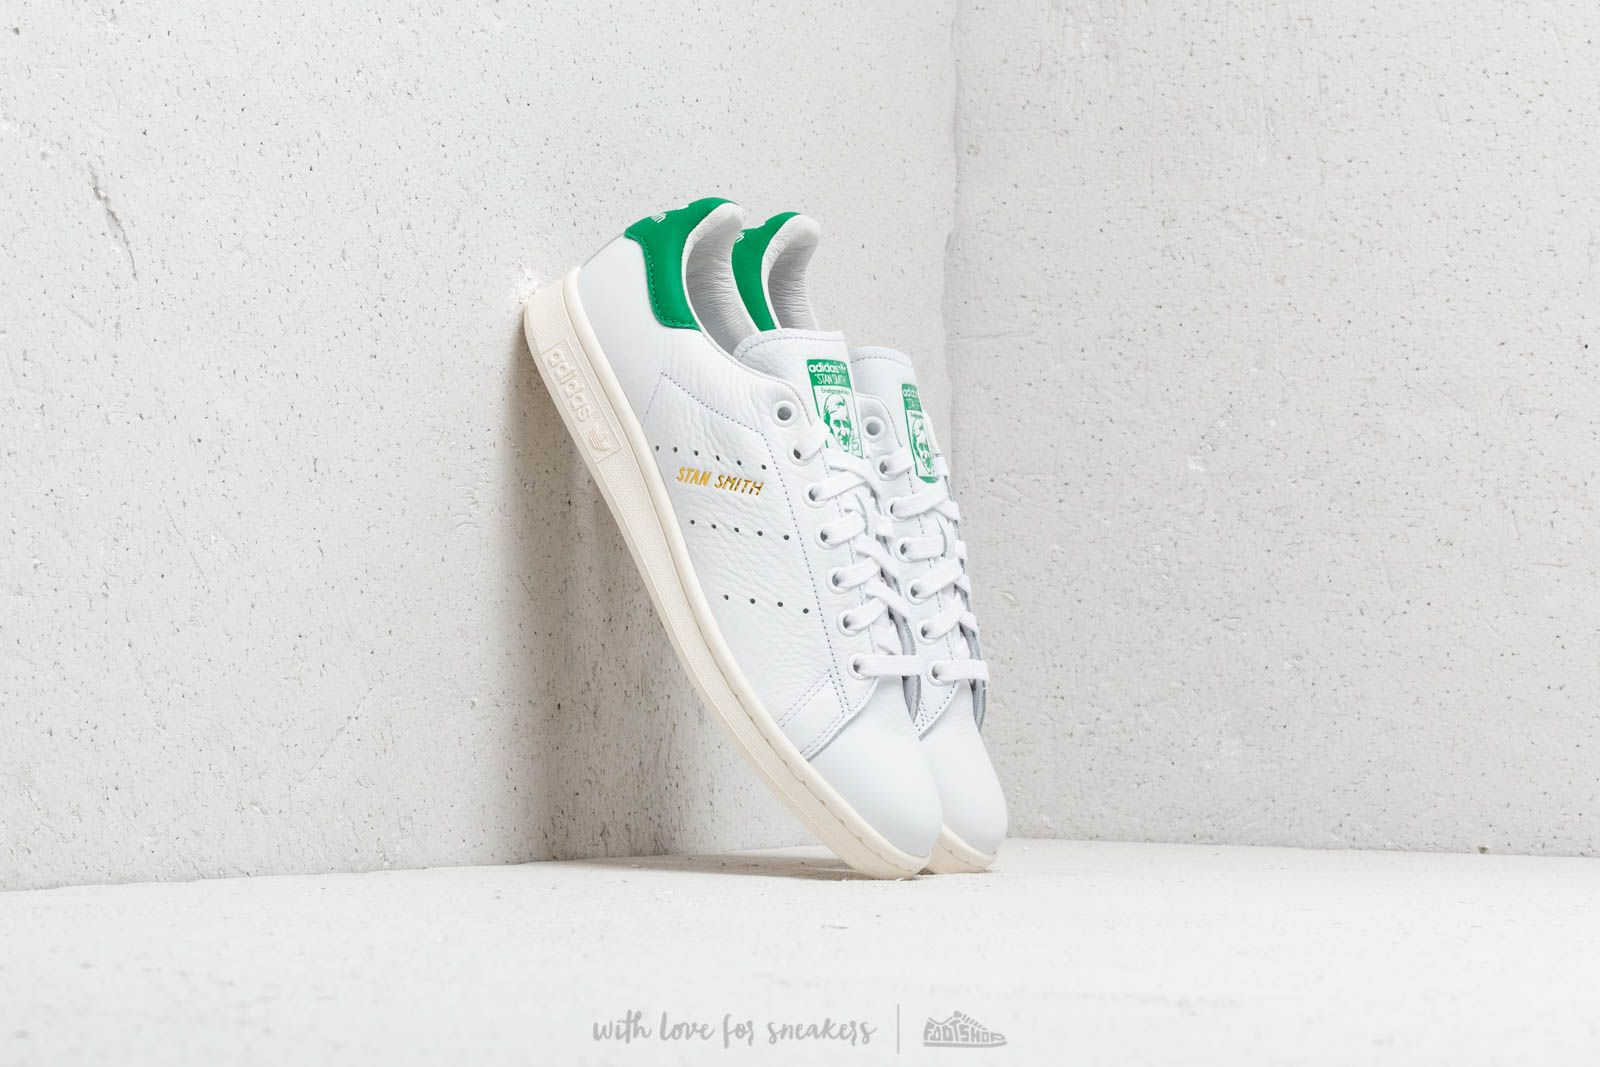 newest 1cde3 eacc1 Adidas Stan Smith Footwear White/ Footwear White/ Green ...